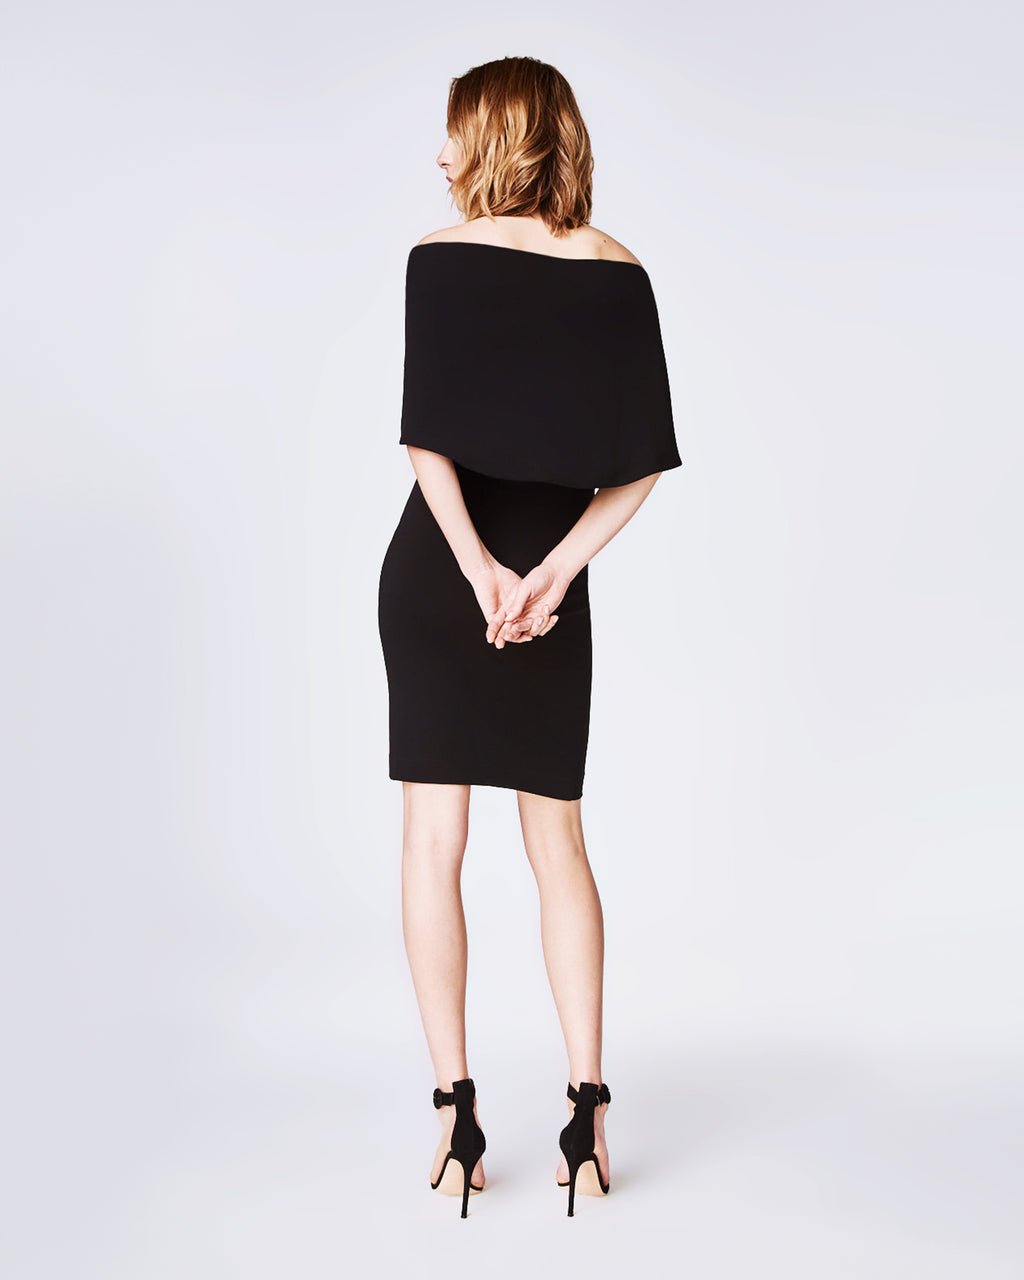 BQ10299 - STRUCTURED HEAVY JERSEY CAPE DRESS - dresses - short - In an off the shoulder silhouette, this little black dress is crafted in a stretchy jersey for a figure hugging fit and falls to a below-the-knee length. Unlined.